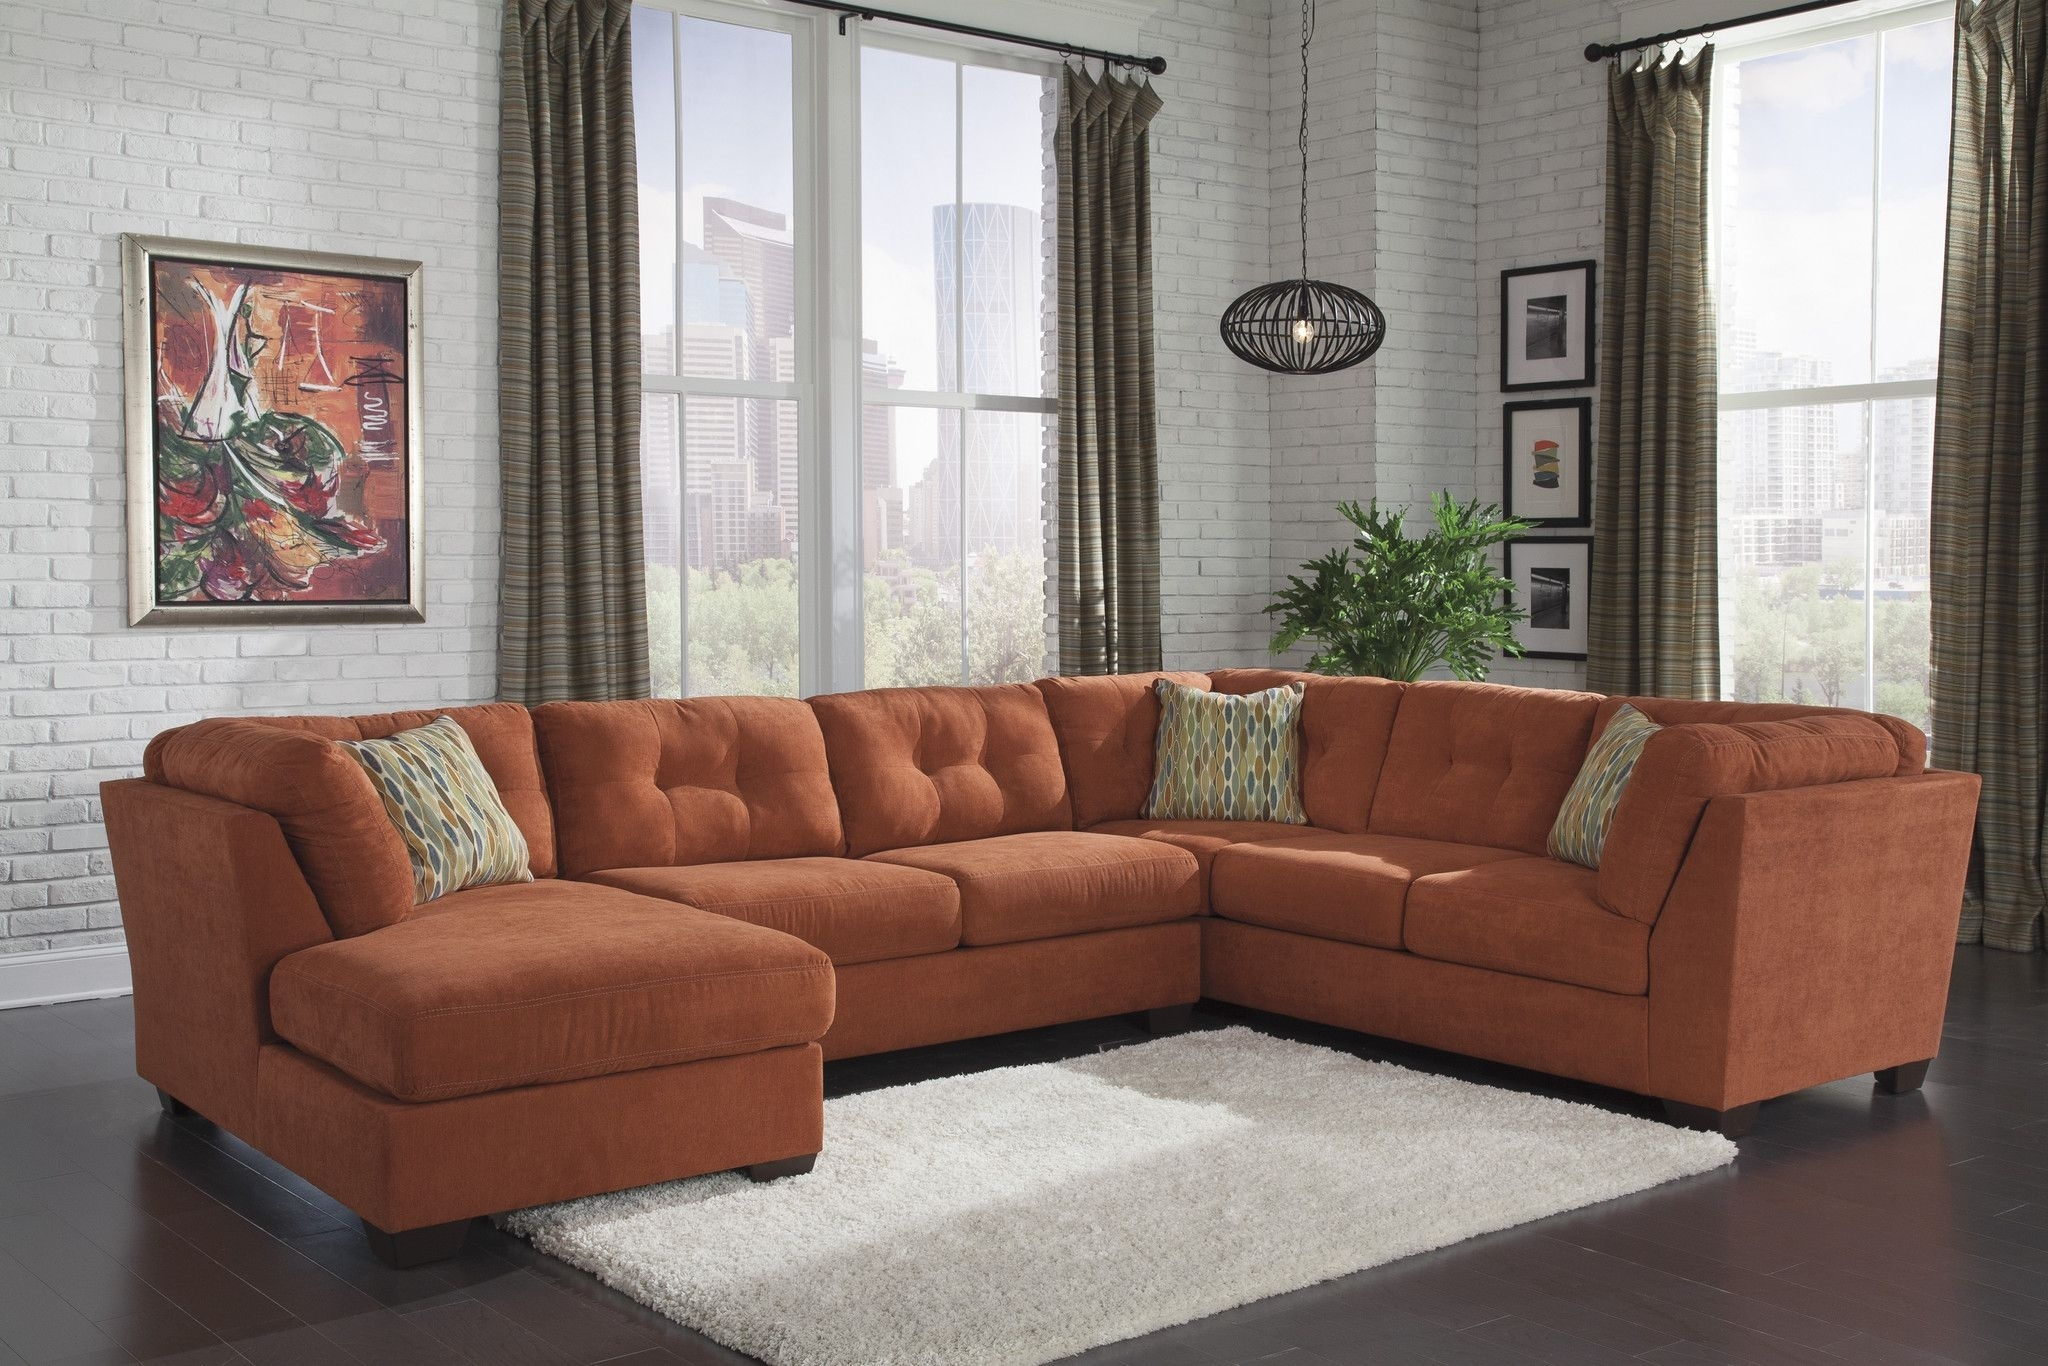 Ashley Furniture Delta City Orange Sectional Left 1970116+34+38 inside Turdur 3 Piece Sectionals With Raf Loveseat (Image 3 of 30)